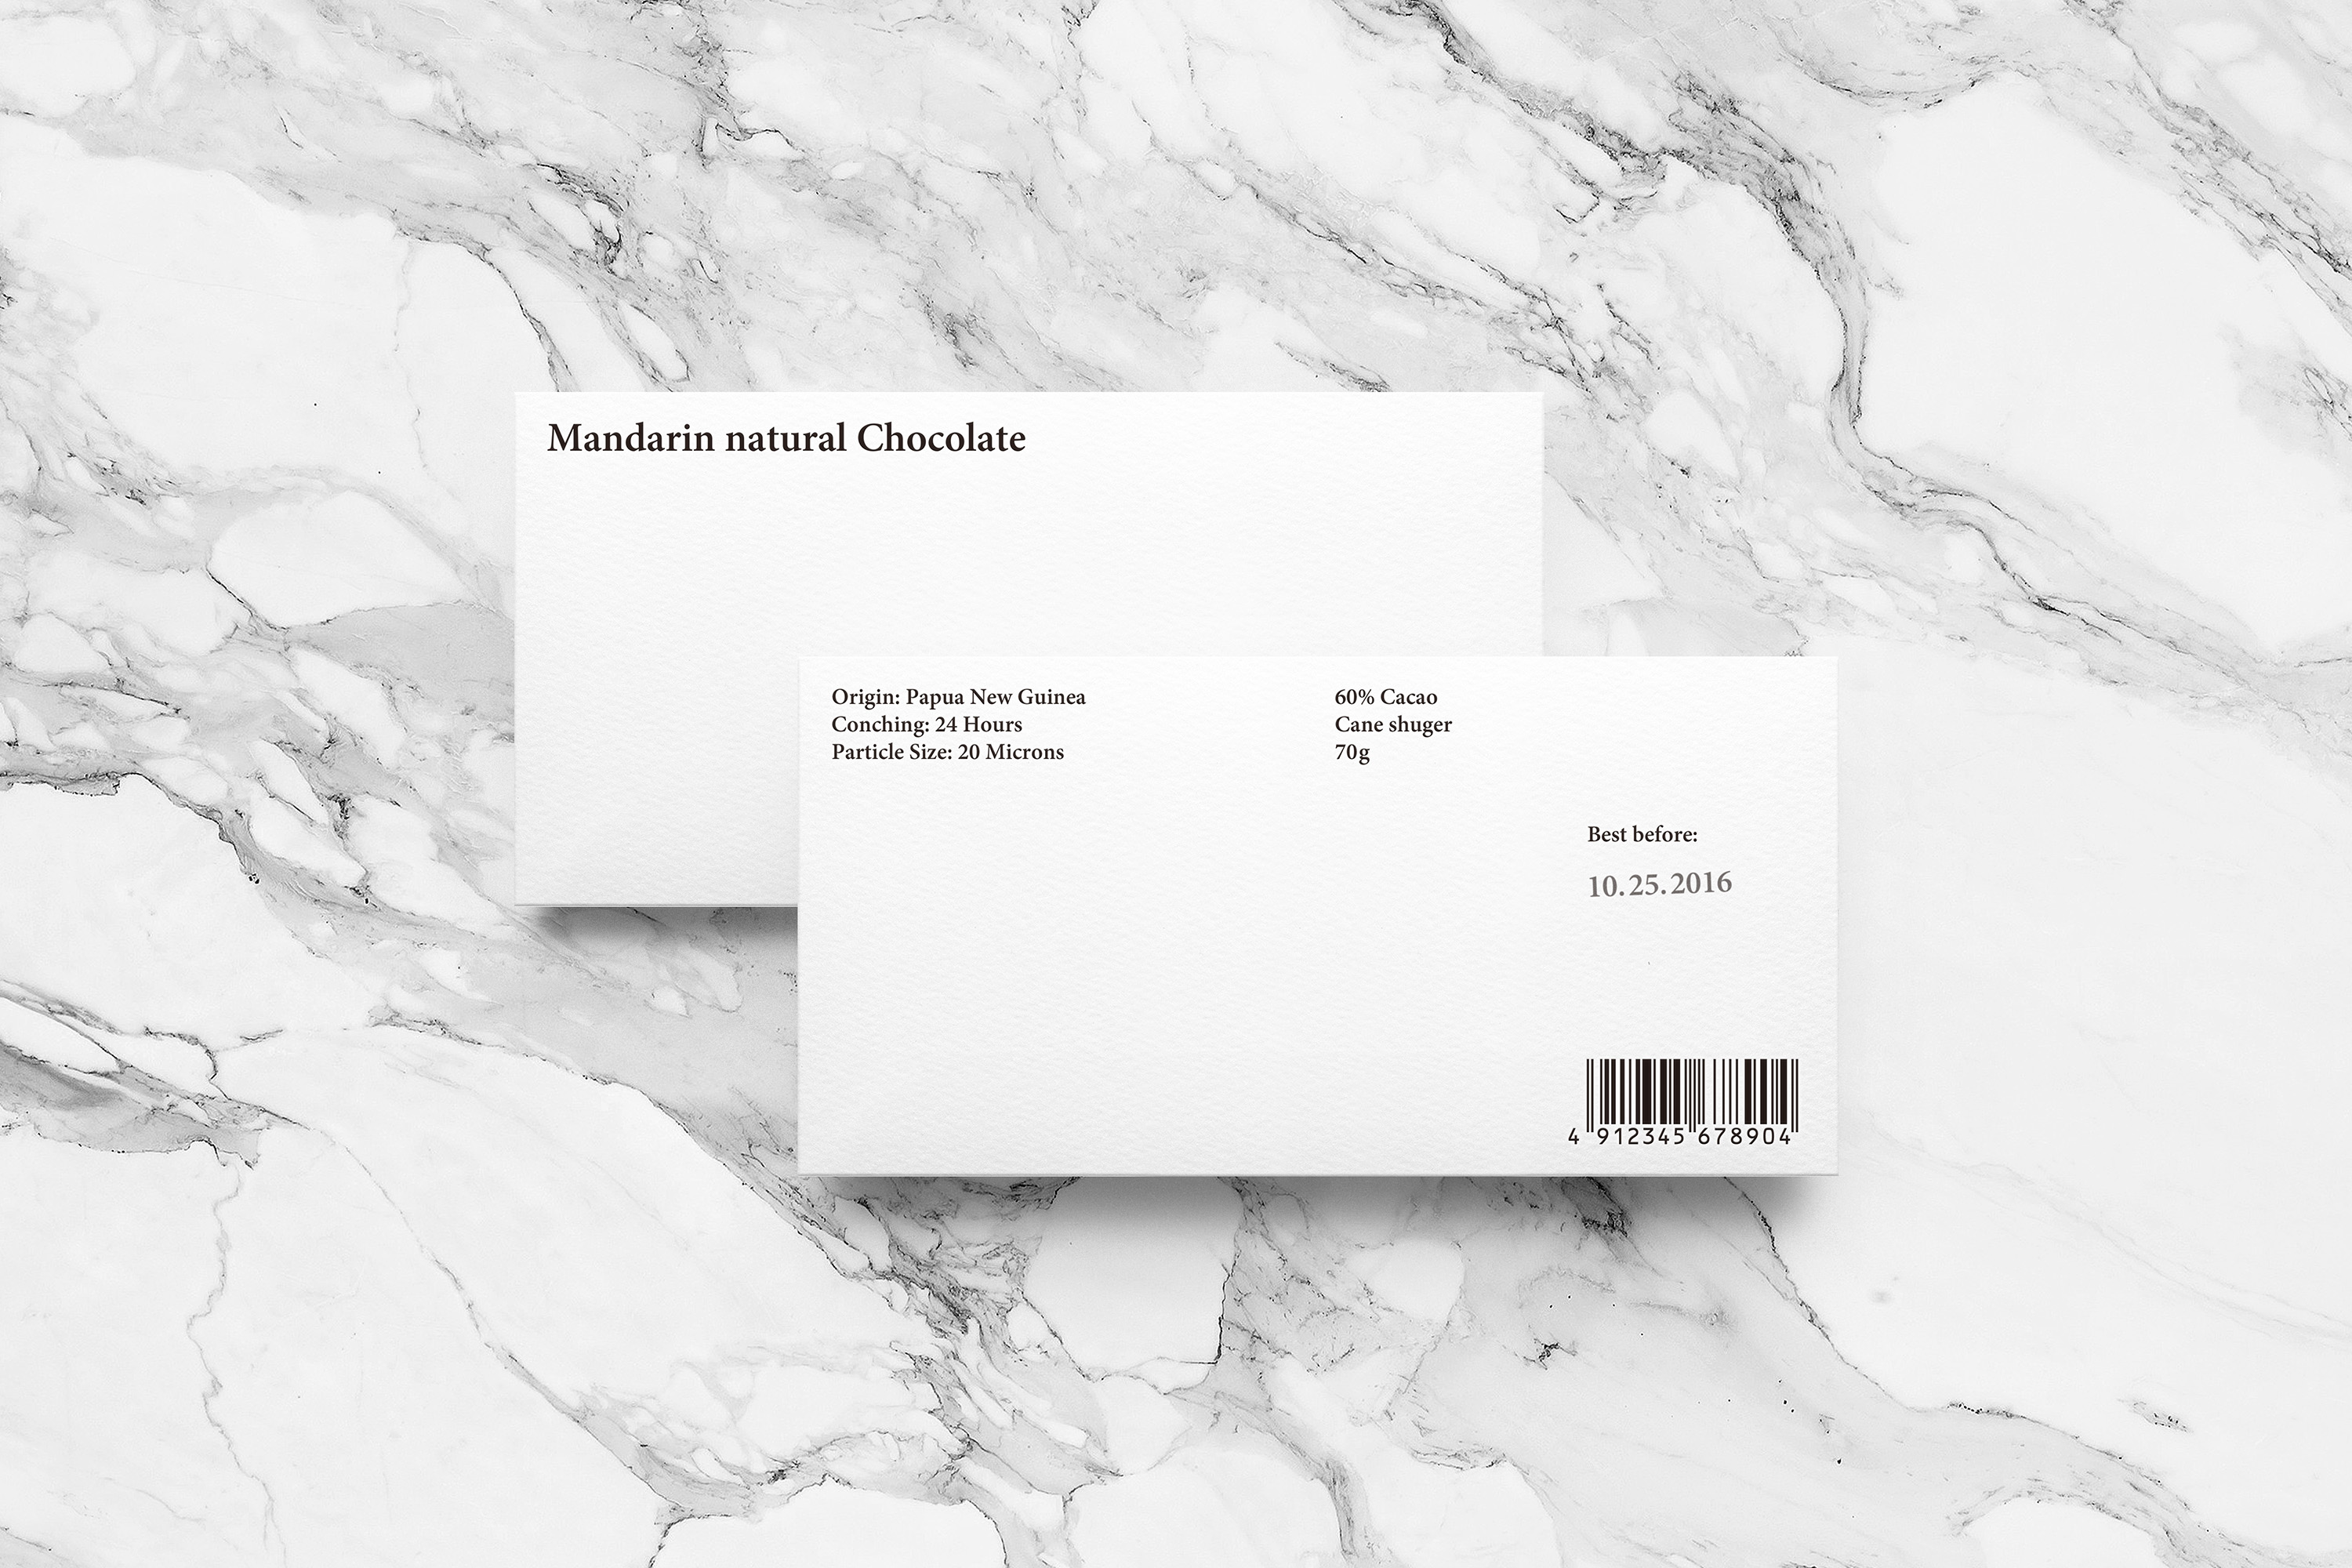 mandarin_natural_chocolate_branding_packaging_design_minimal_simple_yuta_takahashi_06